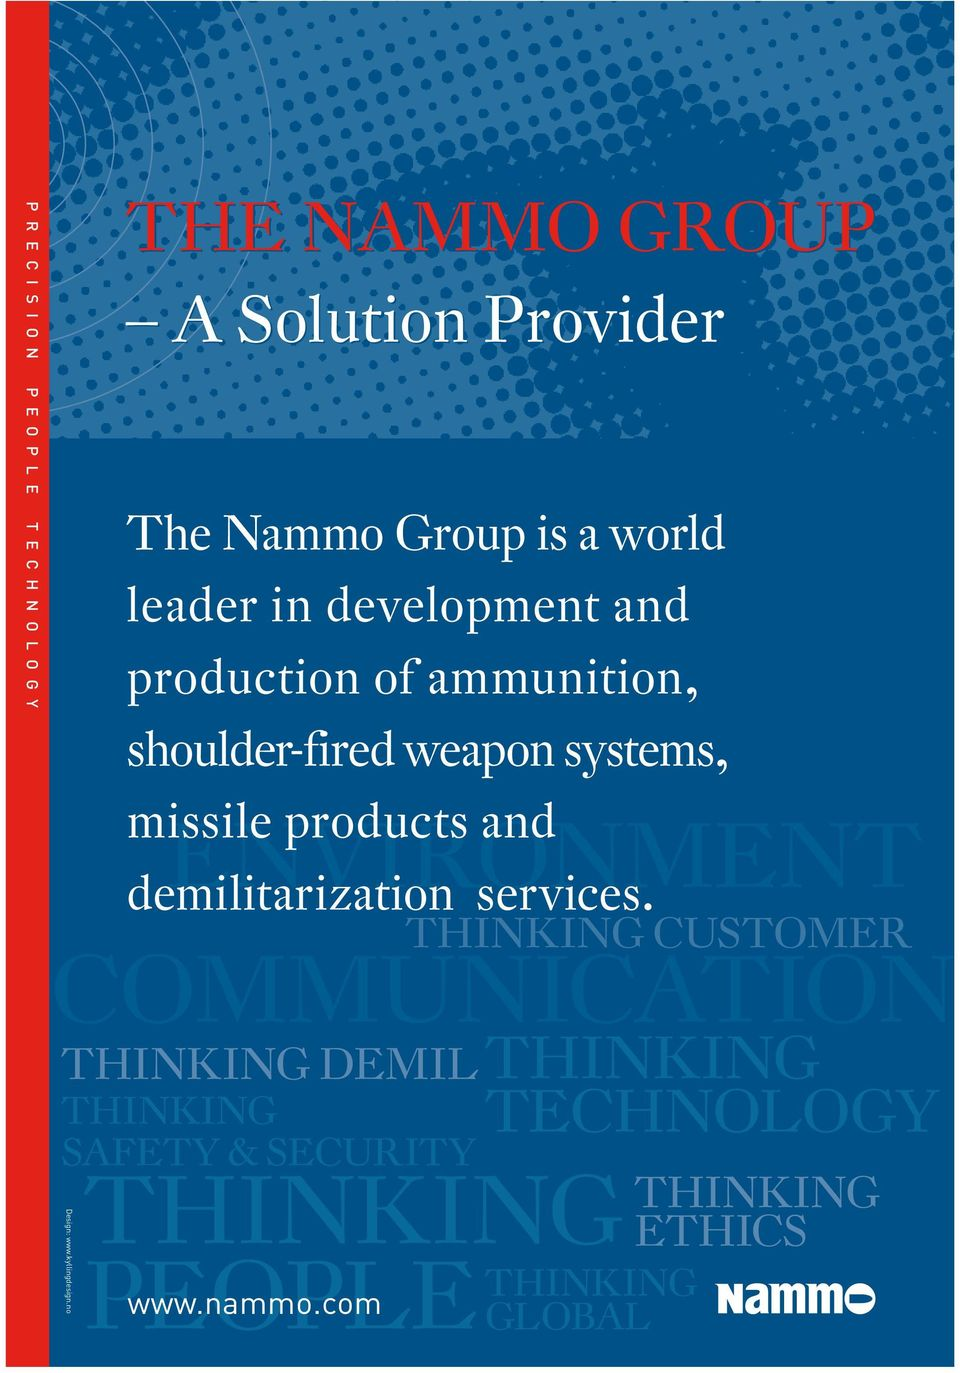 no The Nammo Group is a world leader in development and production of ammunition, shoulder-fired weapon